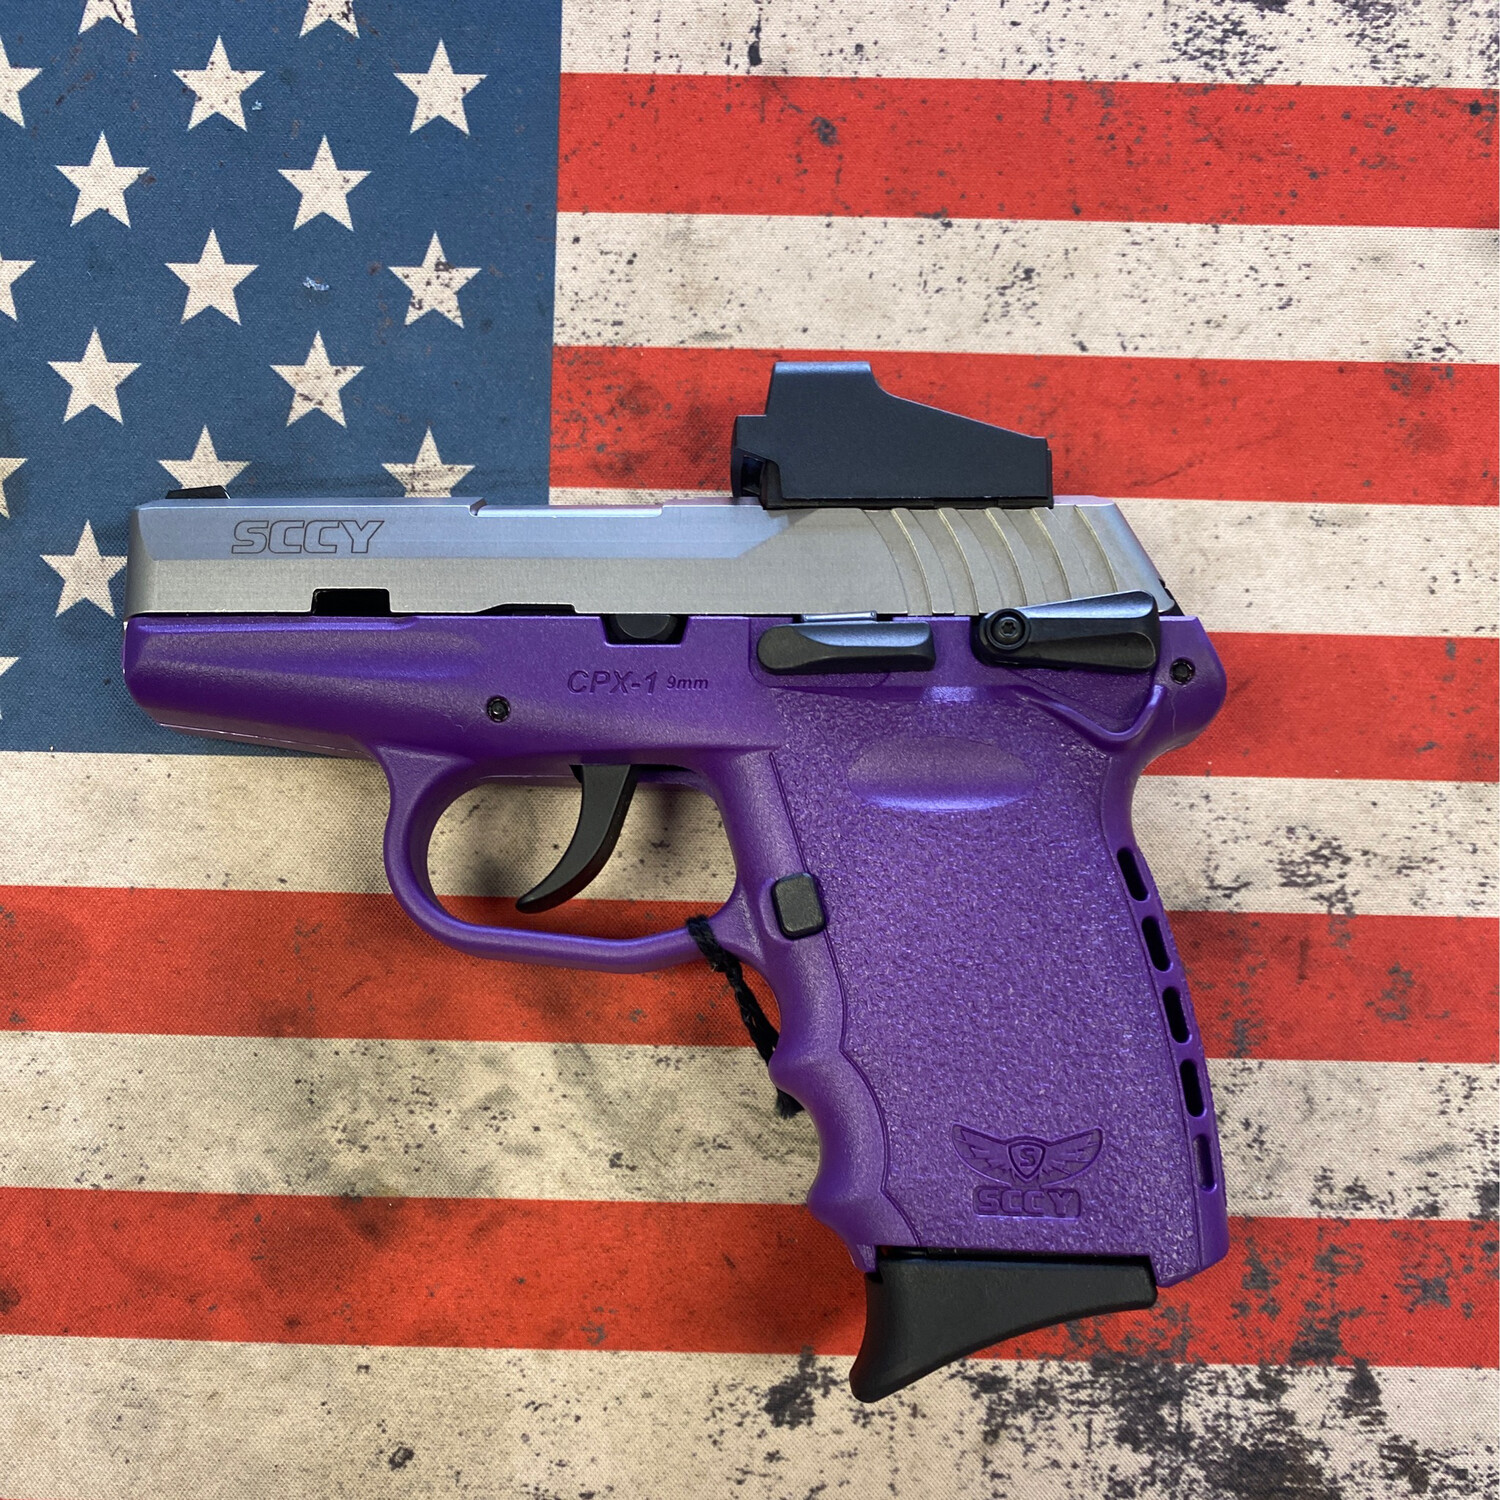 SCCY CPX9 PURPLE